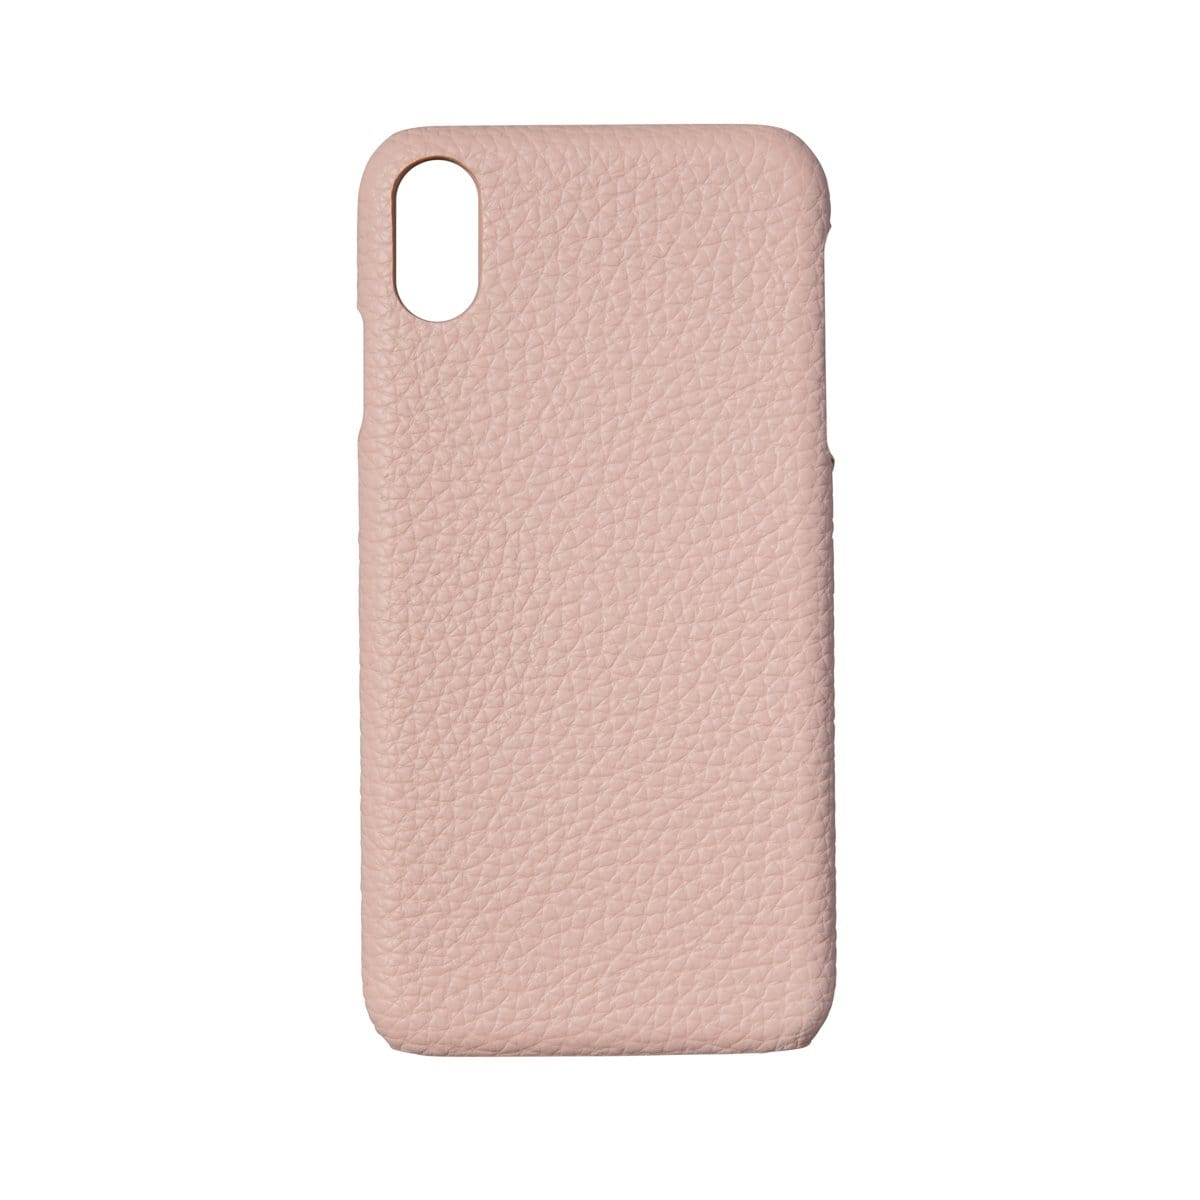 Blush Pink Phone Case (iPhone XR)